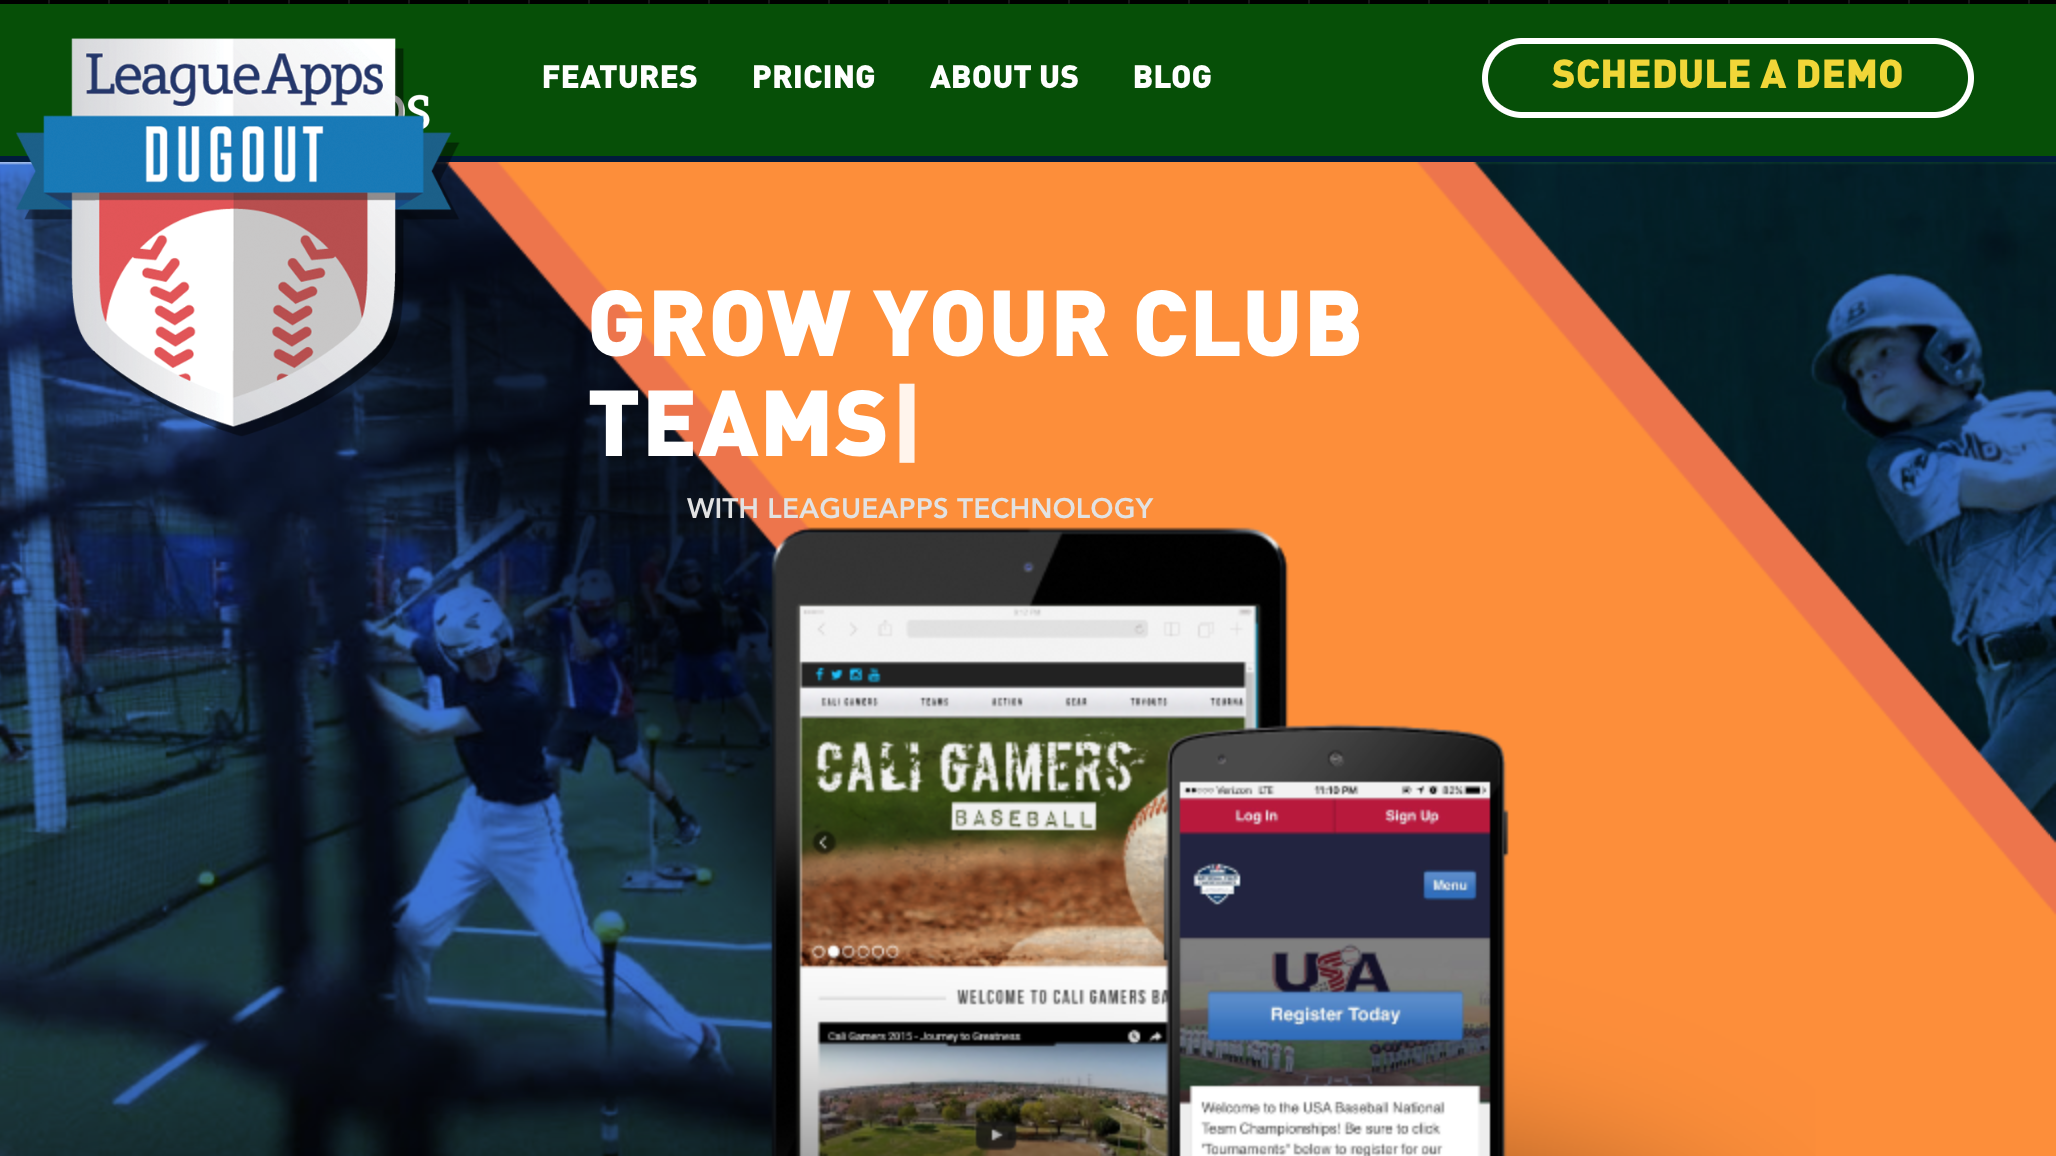 25 Baseball Travel Teams That Are Using LeagueApps Dugout